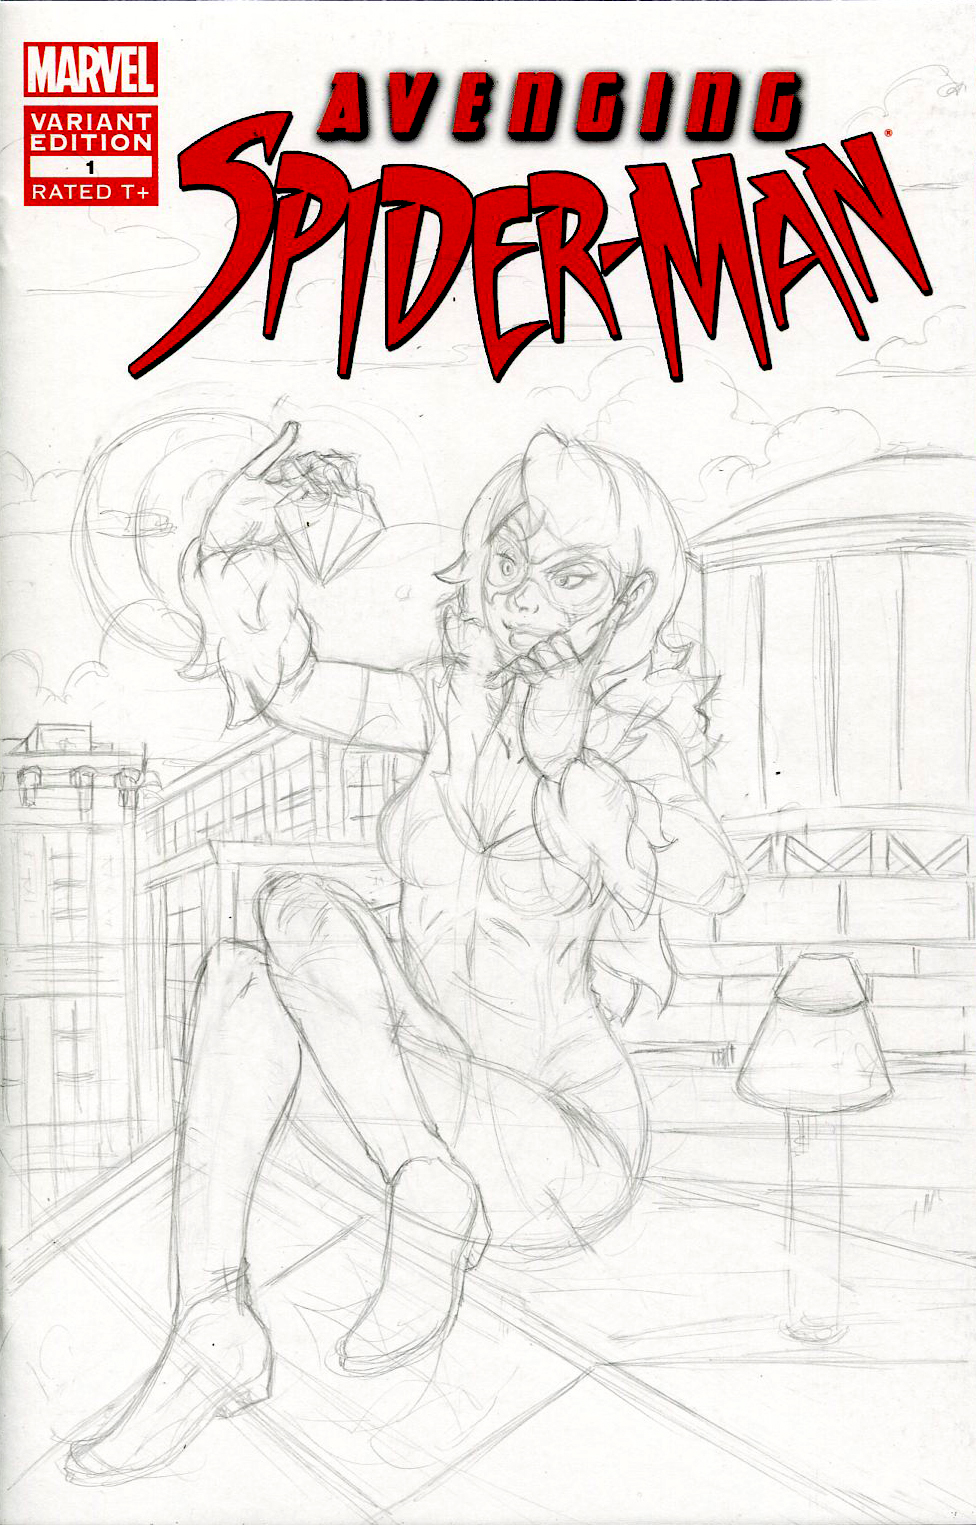 Blackcat Avenging Spider Sketch Cover Rough Pencil by ibroussardart